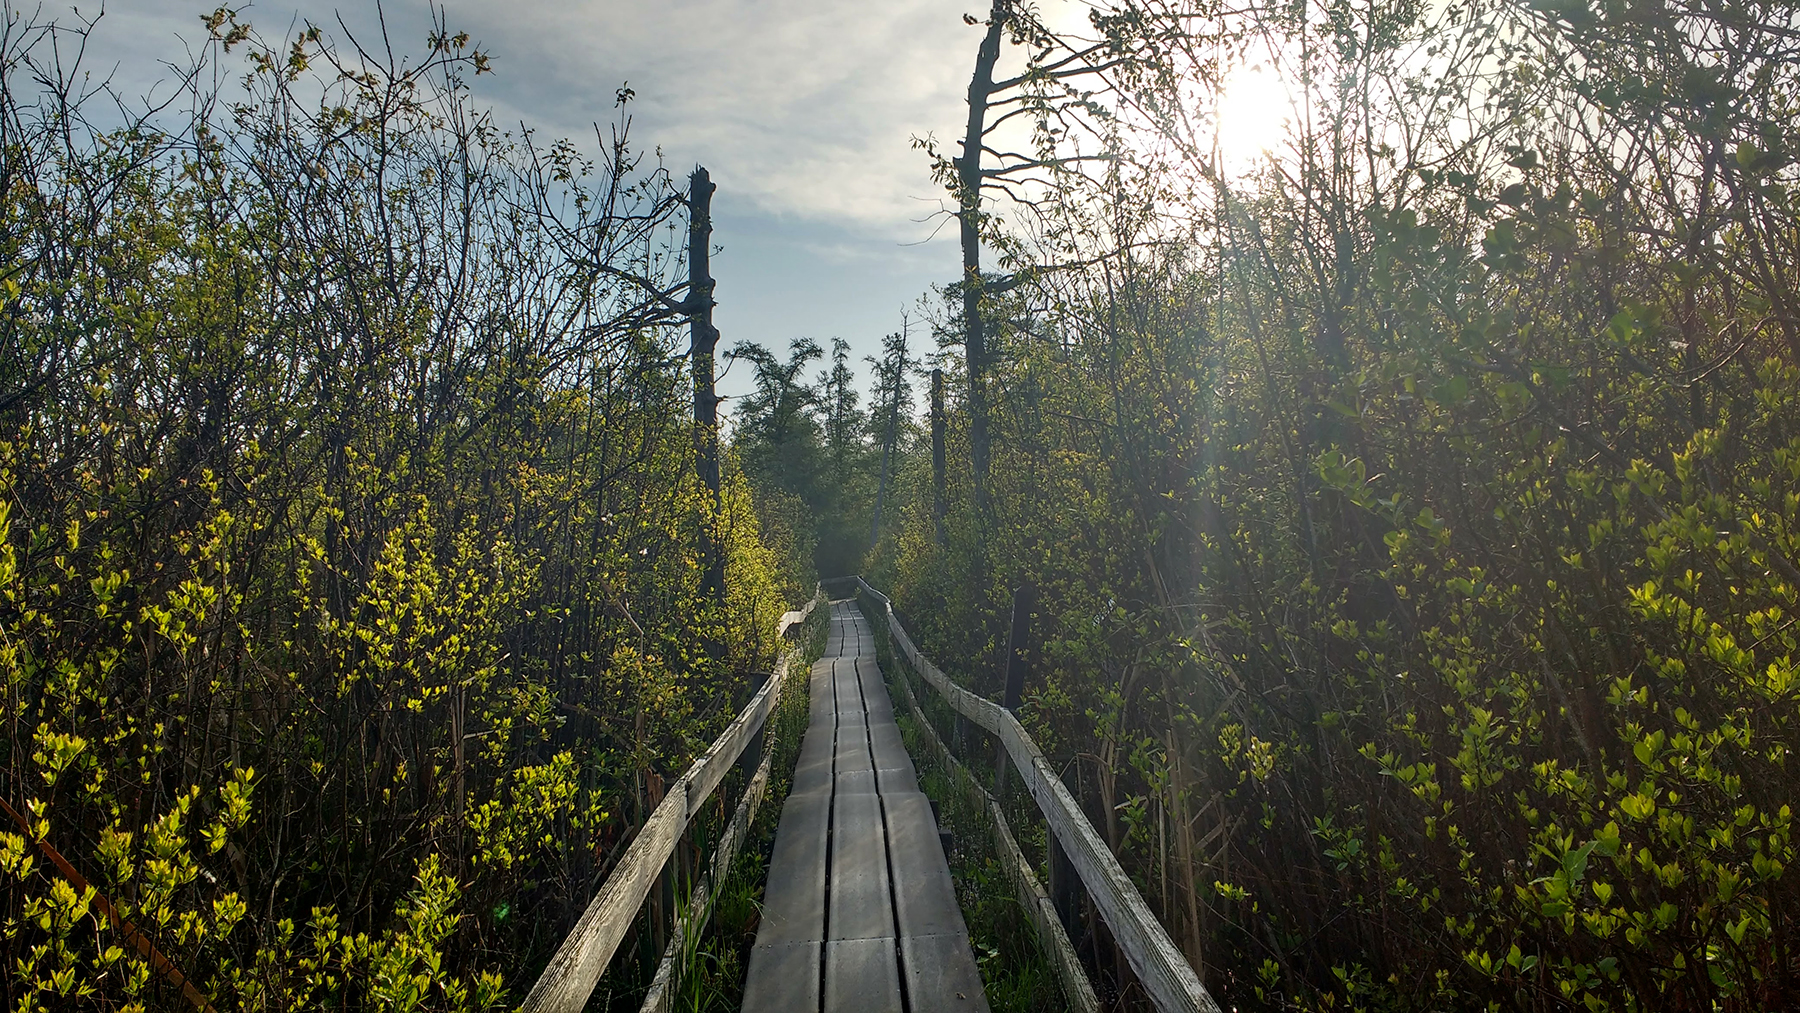 a boardwalk at Volo Bog State Natural Area. Photo by Anastasia Rahlin